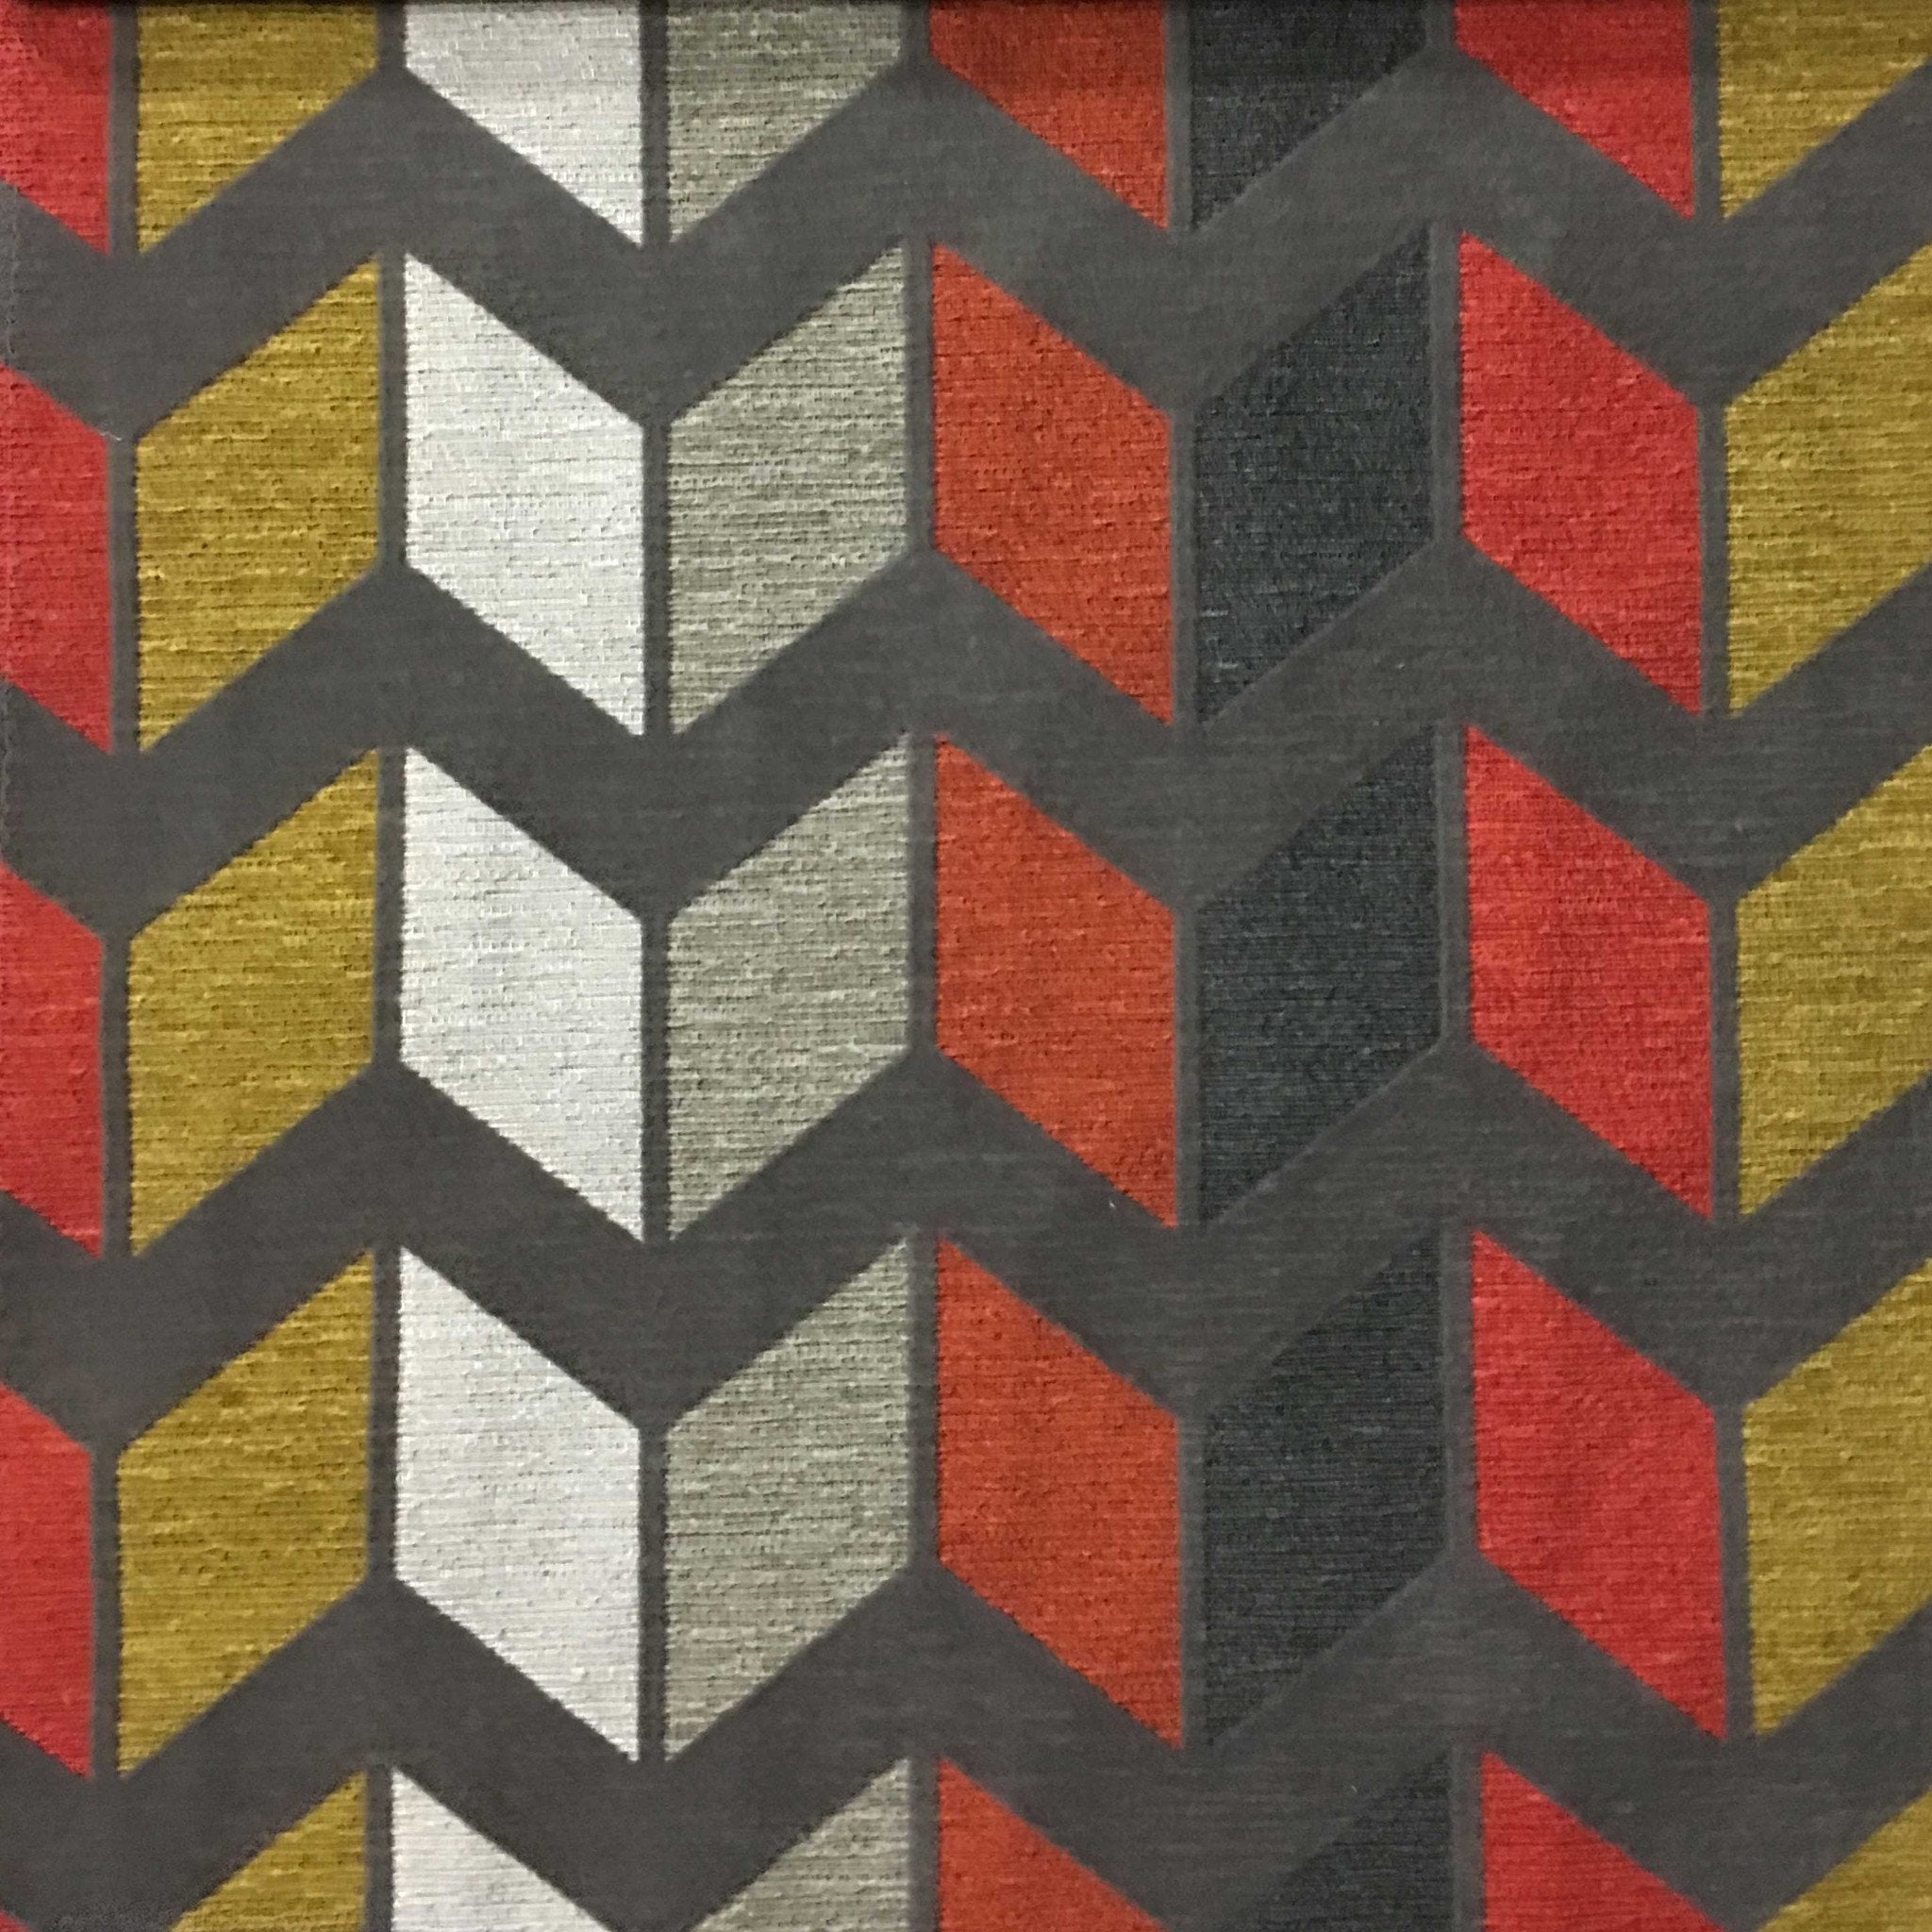 ziba chevron pattern cotton blend upholstery fabric by the yard. Black Bedroom Furniture Sets. Home Design Ideas